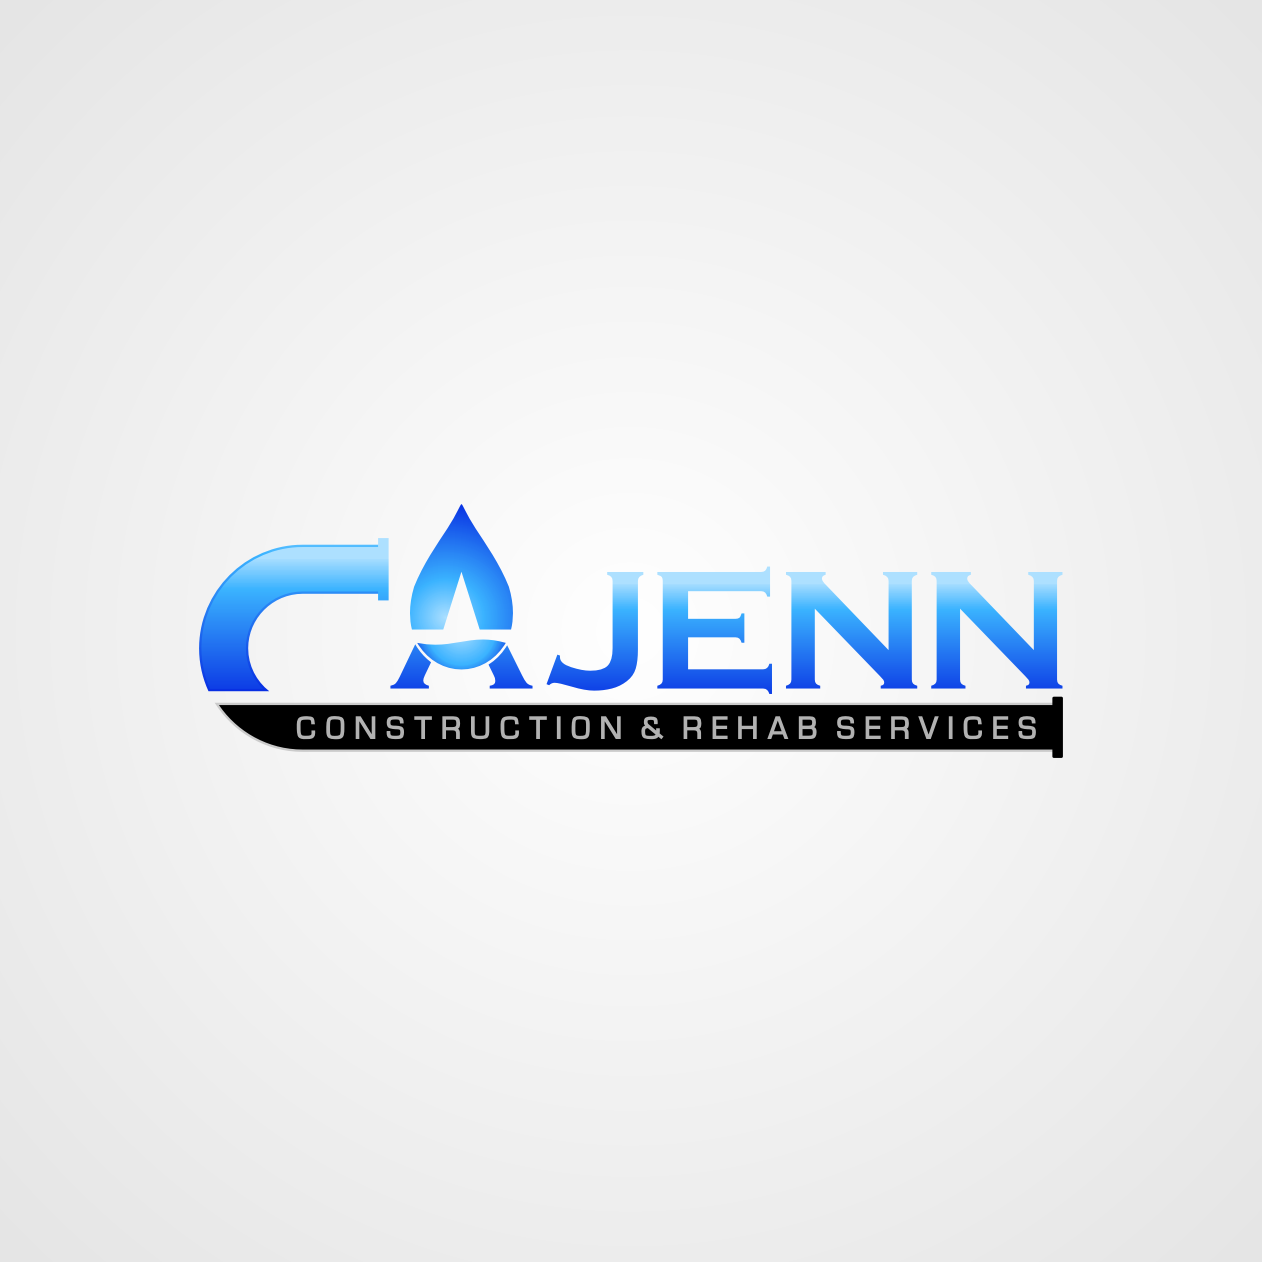 Logo Design by rifatz - Entry No. 135 in the Logo Design Contest New Logo Design for CaJenn Construction & Rehab Services.